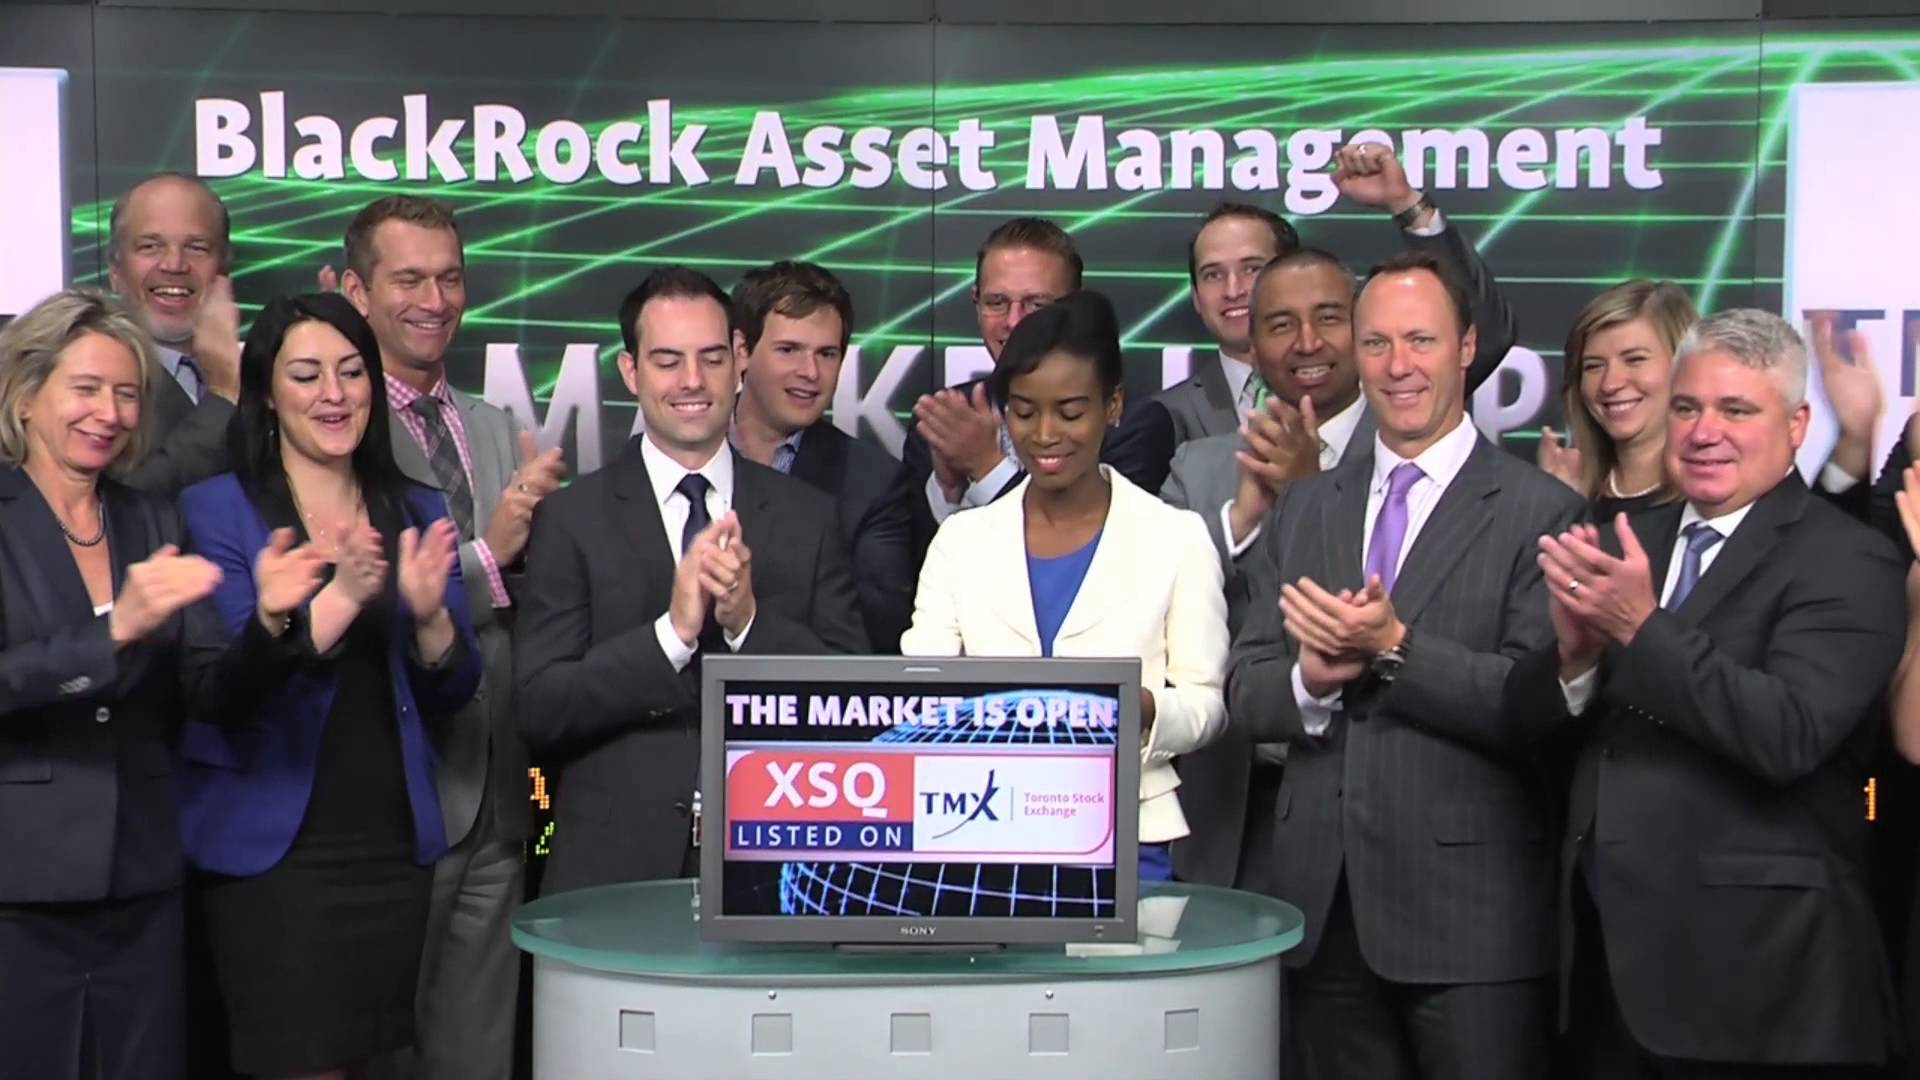 iShares Canada (XSQ:TSX) opens Toronto Stock Exchange, July 28, 2014.